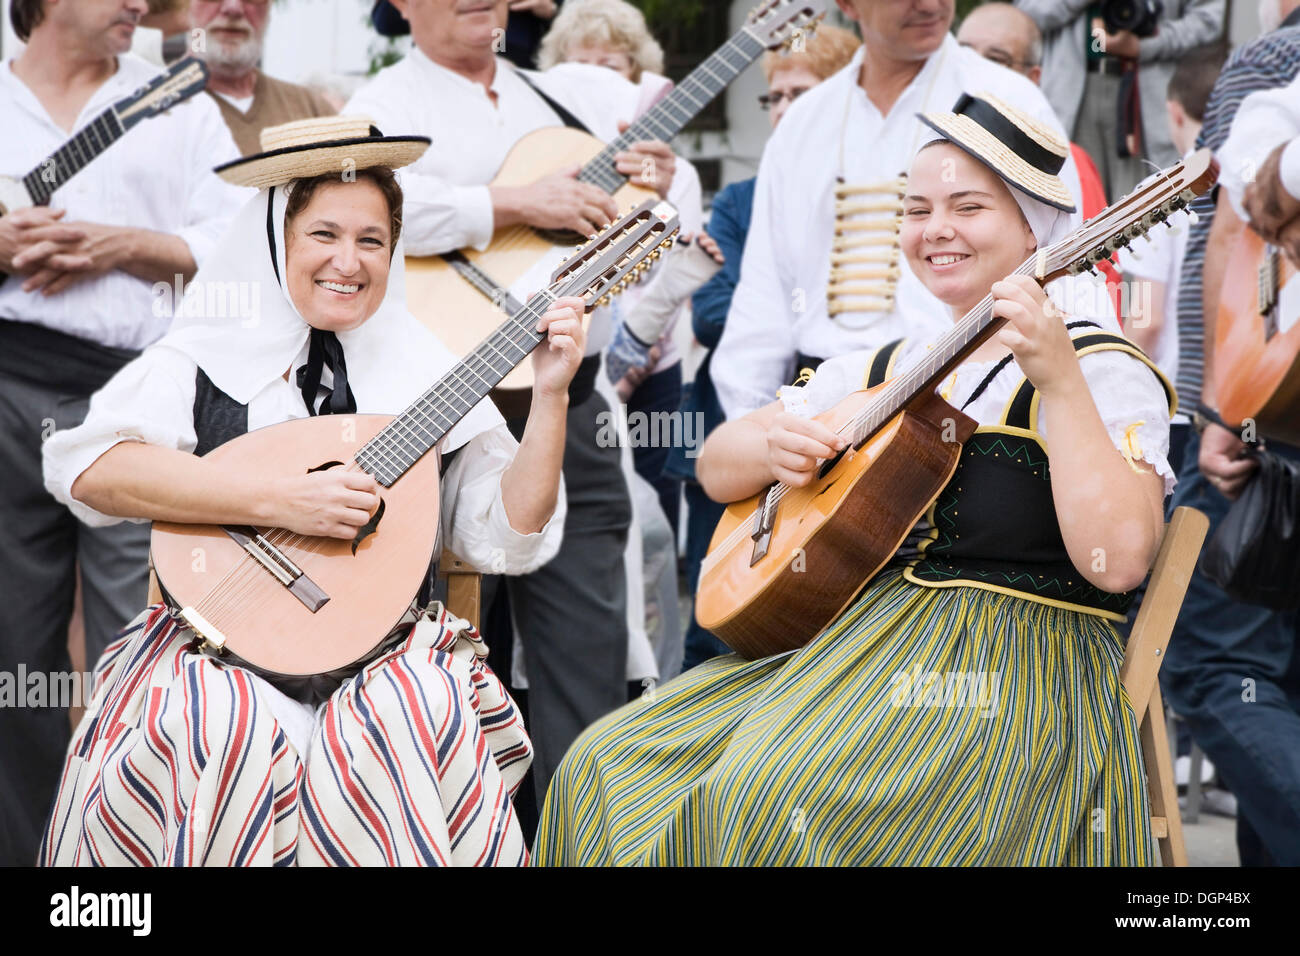 Traditional folk group at the market of Teguise, Lanzarote, Canary Islands, Spain, Europe - Stock Image